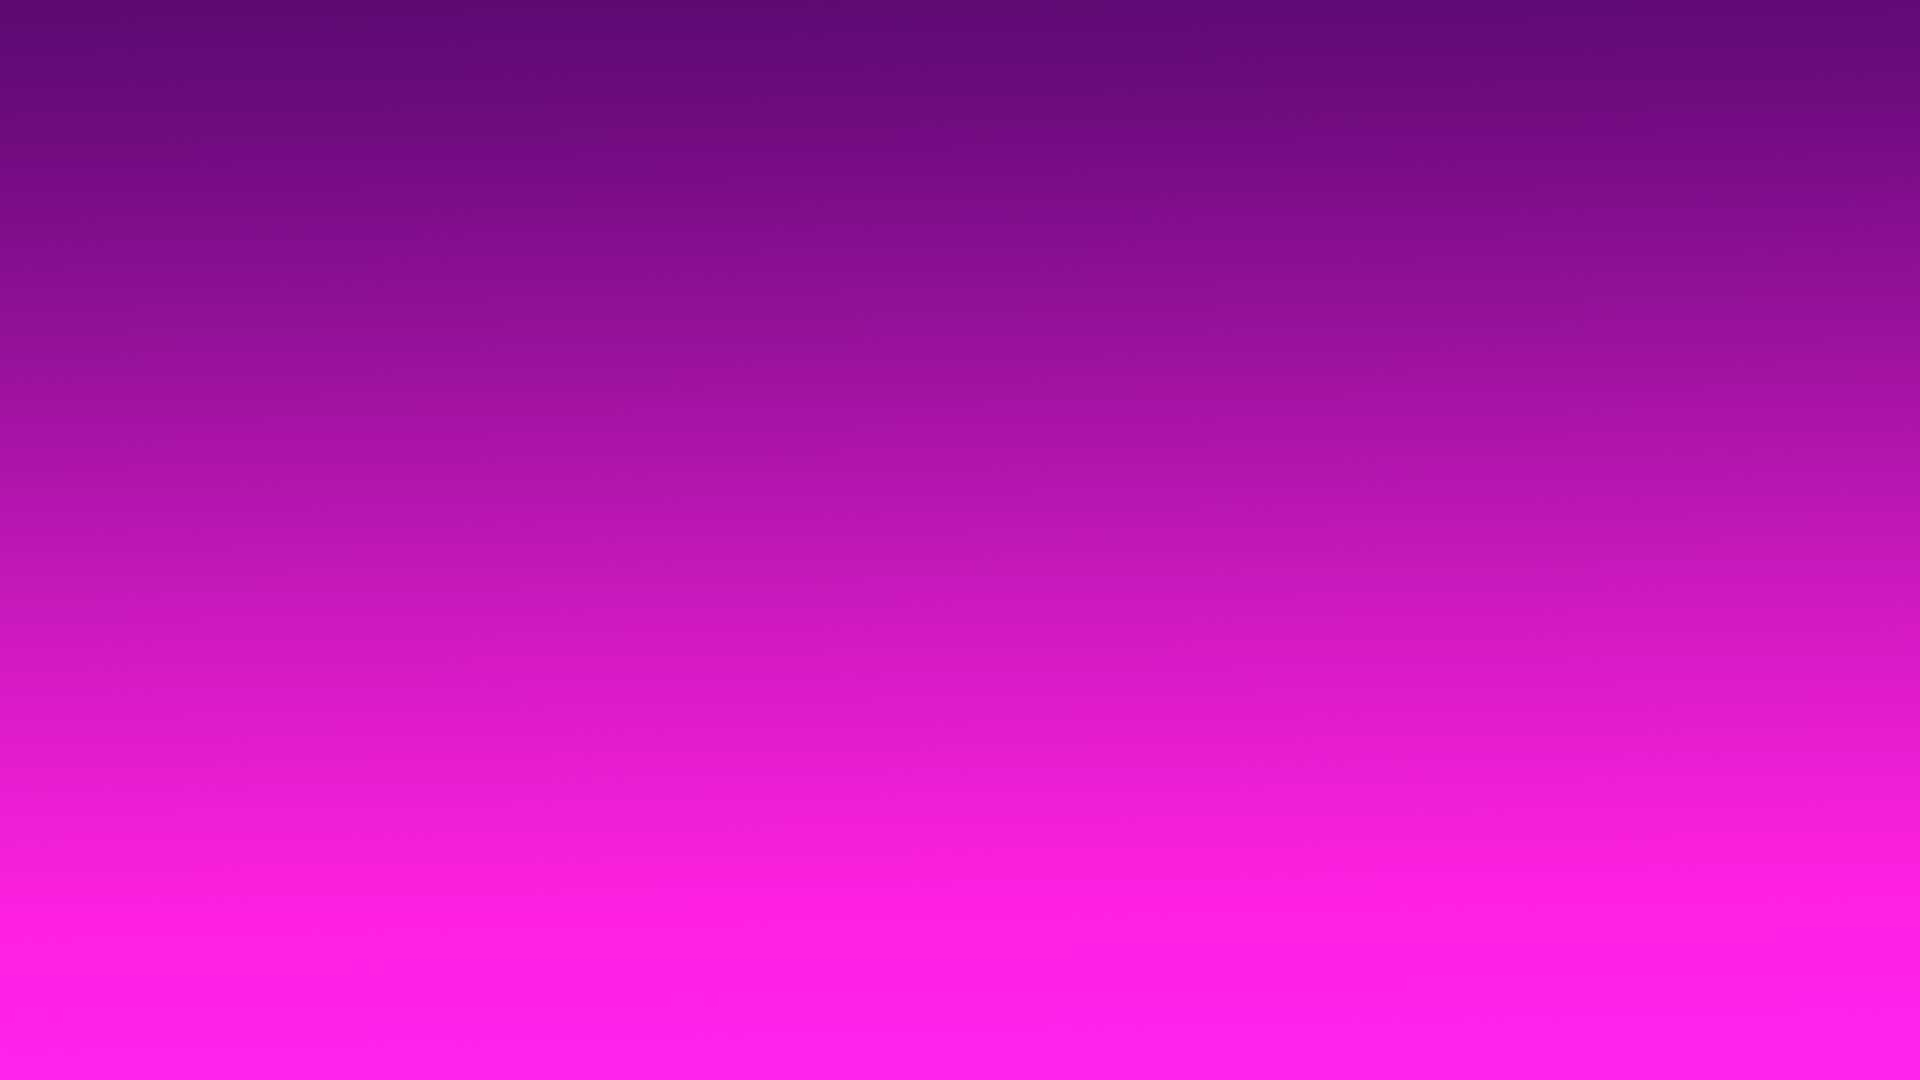 purple and pink backgrounds - wallpaper cave